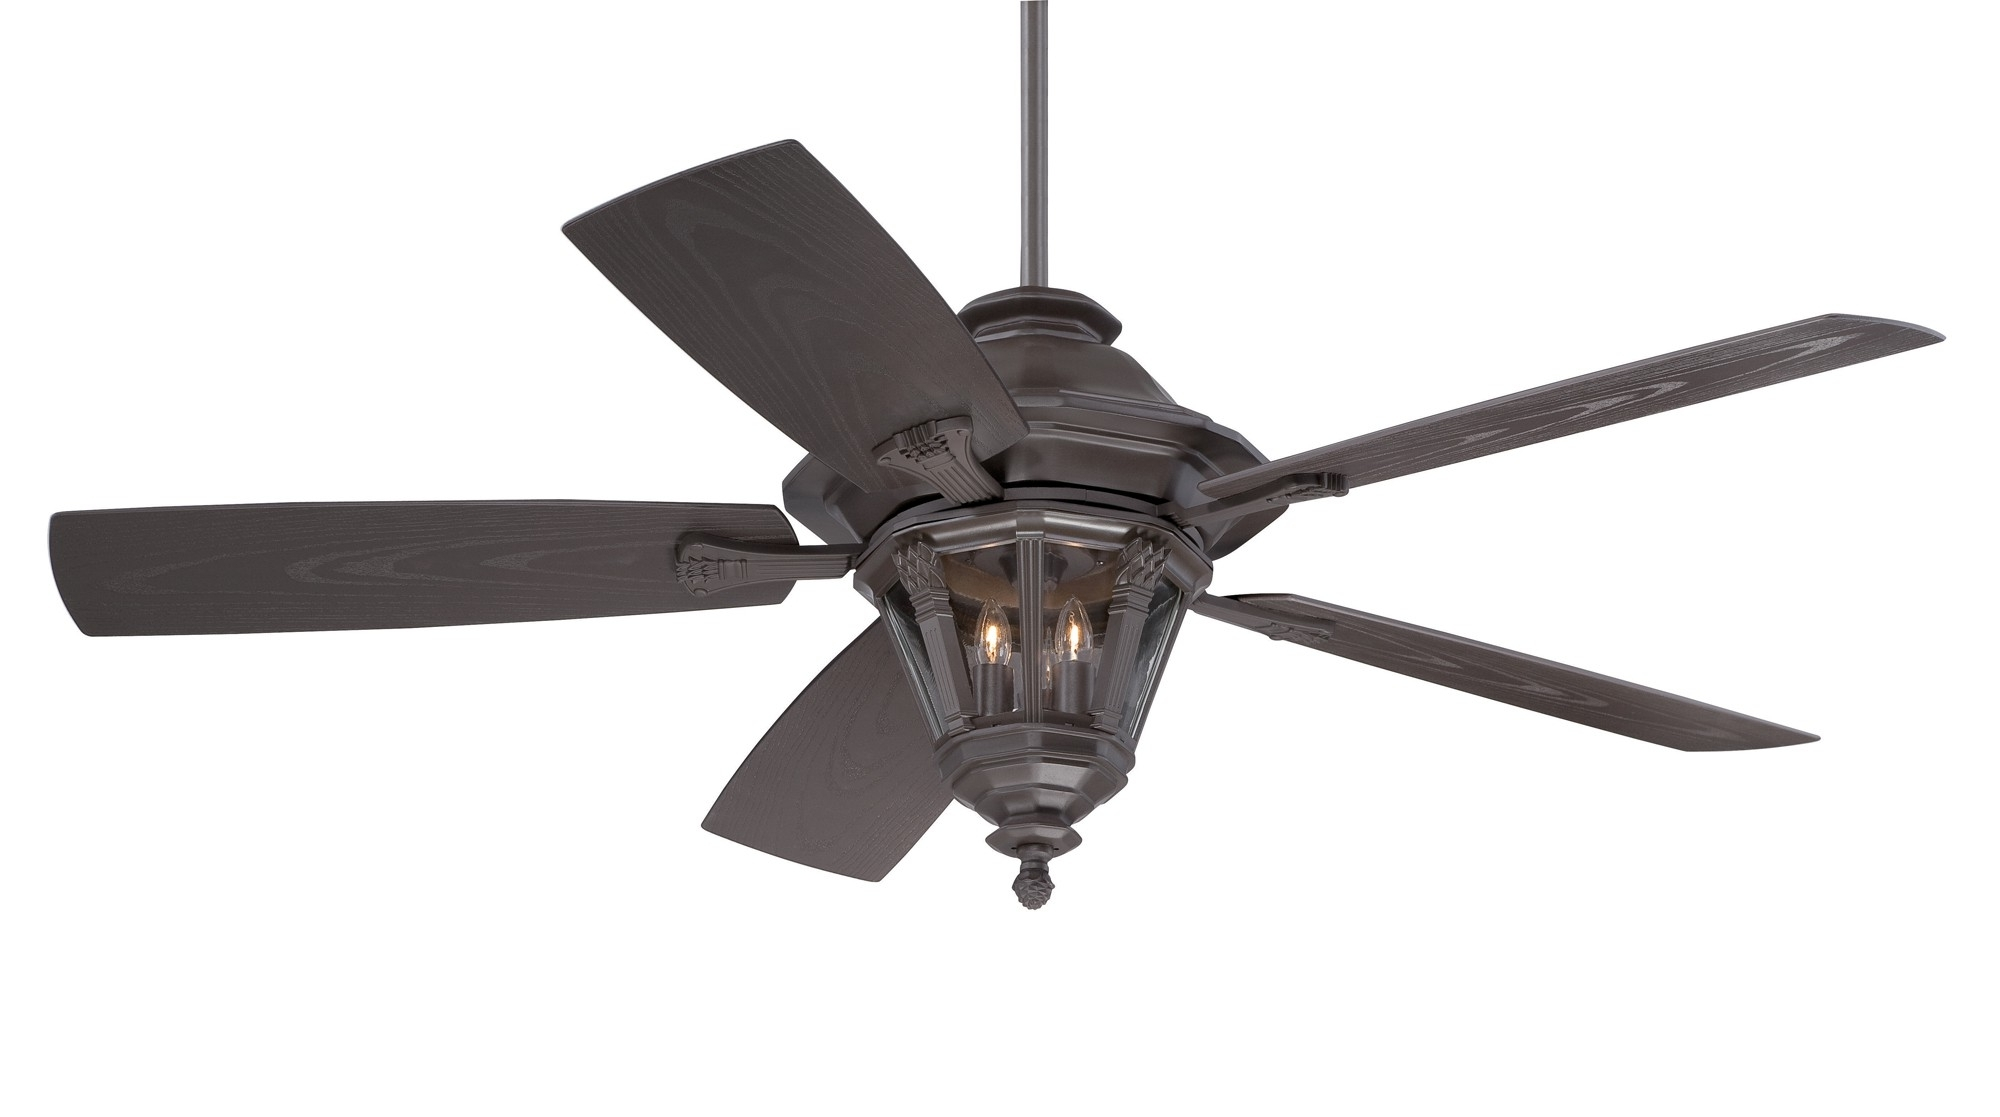 Unique Outdoor Ceiling Fans With Lights Inside Fashionable Top 10 Unique Outdoor Ceiling Fans 2018 Warisan Lighting, Best (Gallery 1 of 20)